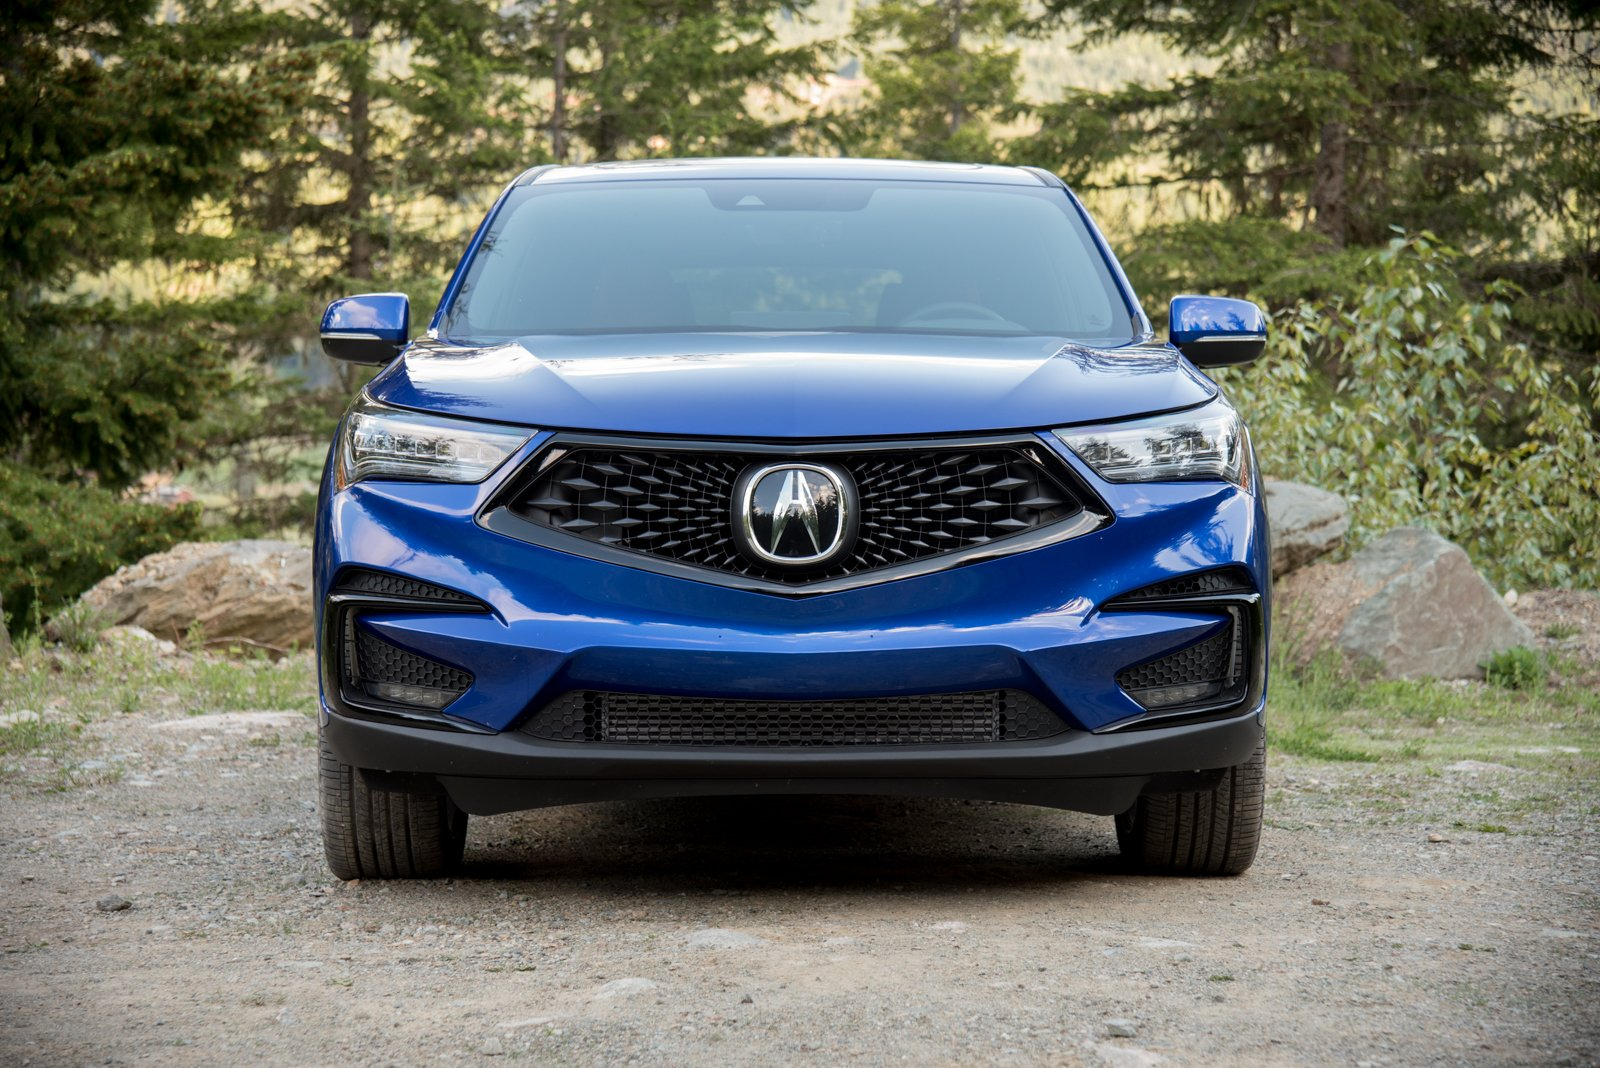 torque report spec best a rdx acura review the yet